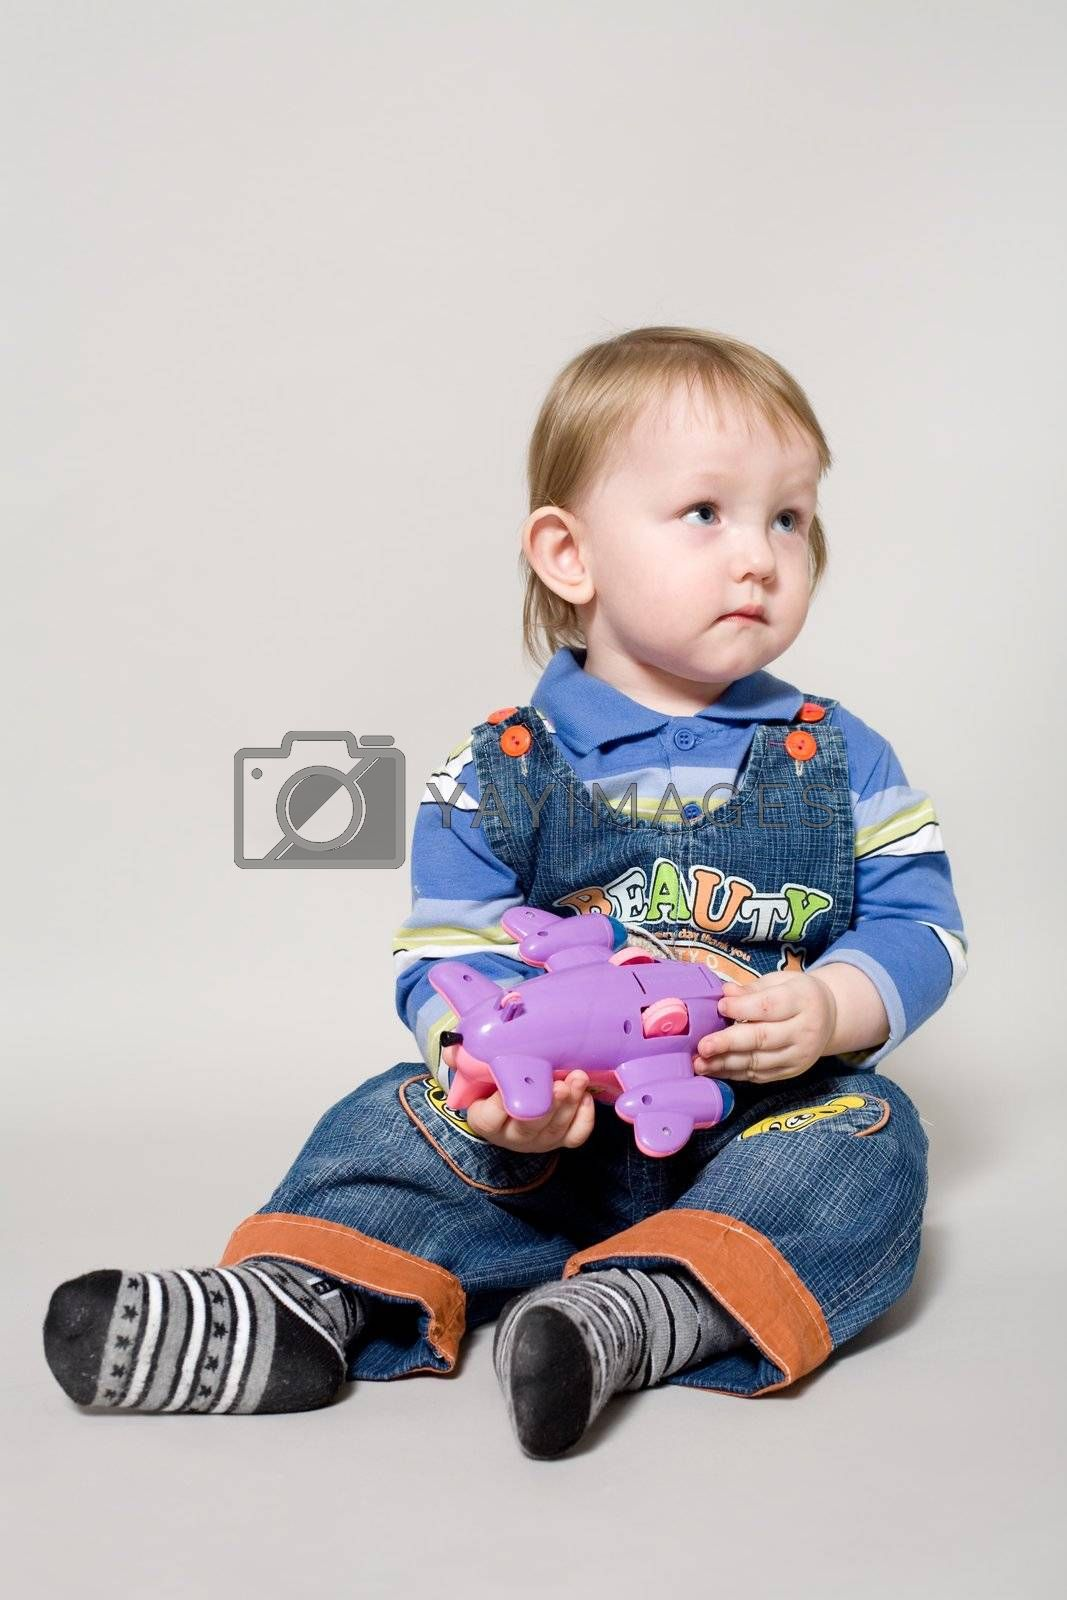 people series: little boy with toy offended